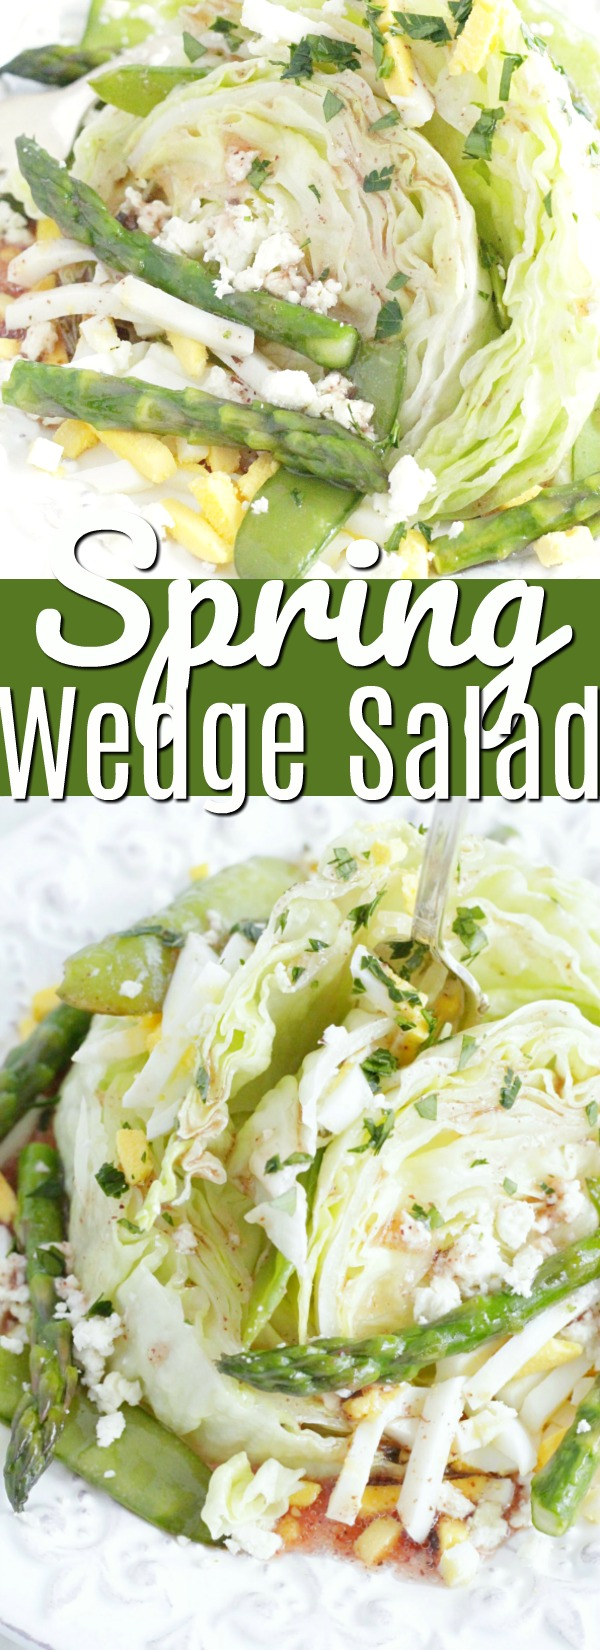 Spring Wedge Salad | Foodtastic Mom